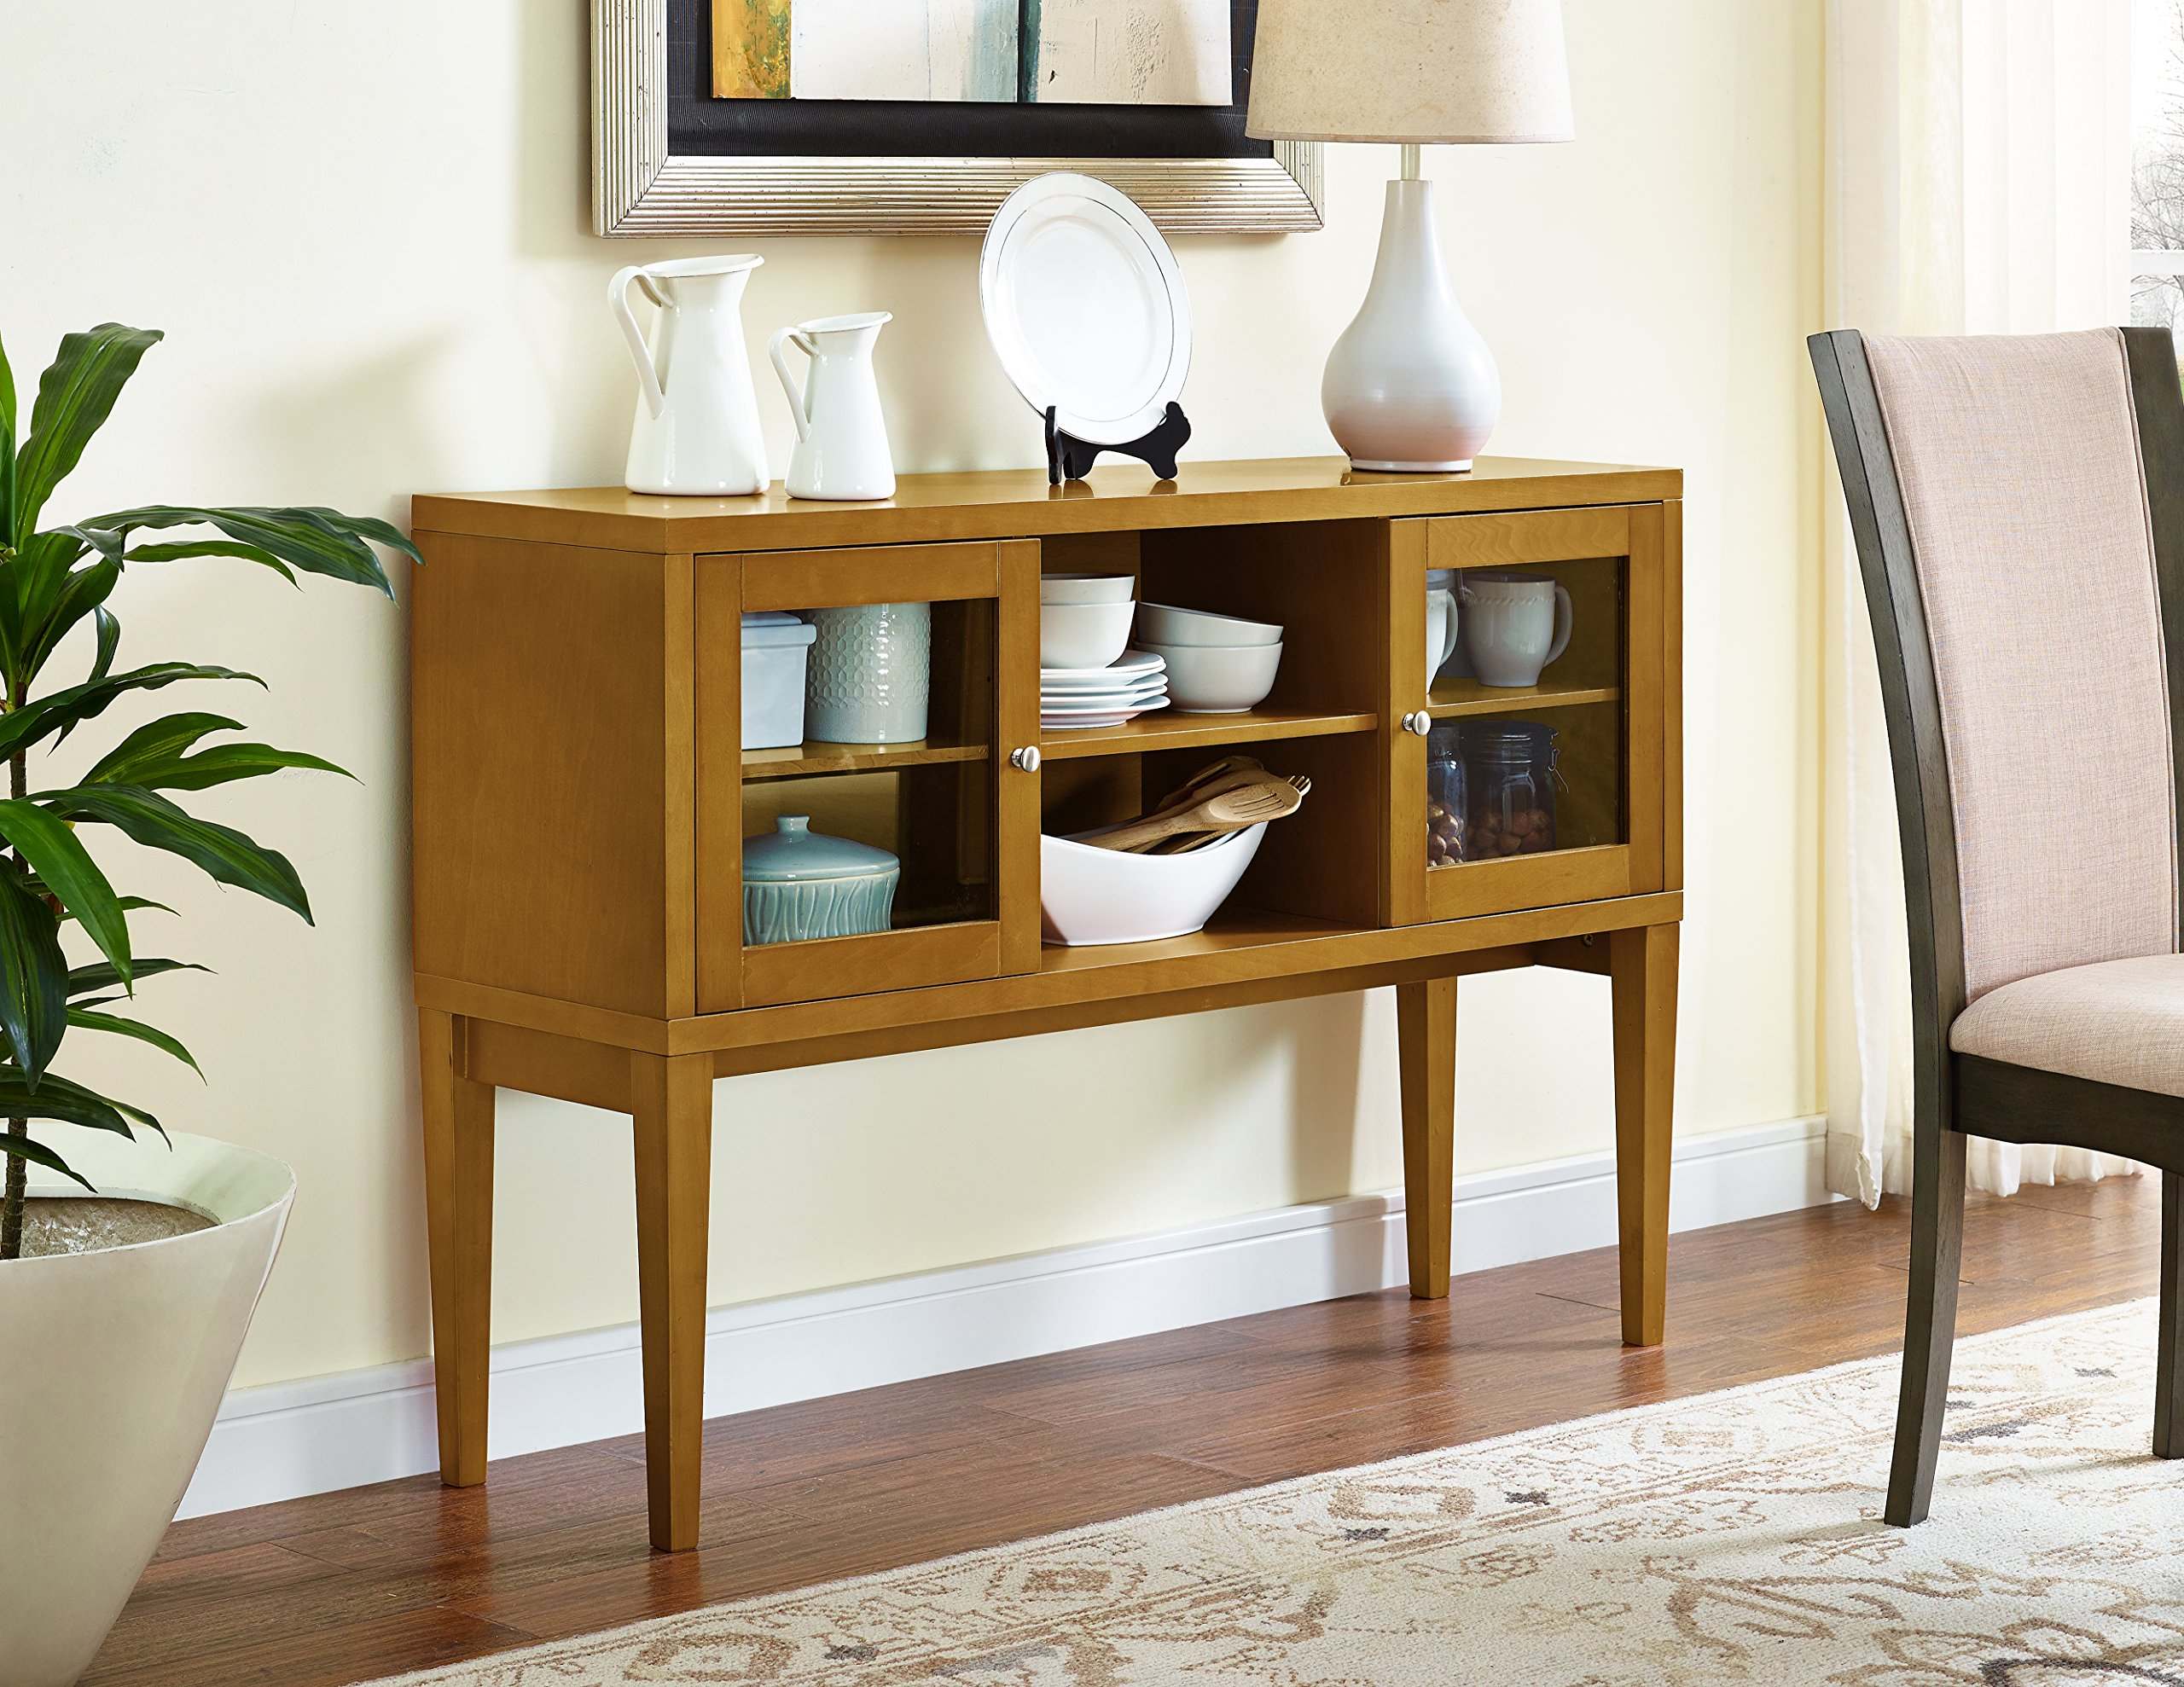 WE Furniture 52'' Wood Buffet with Tapered Legs - Acorn